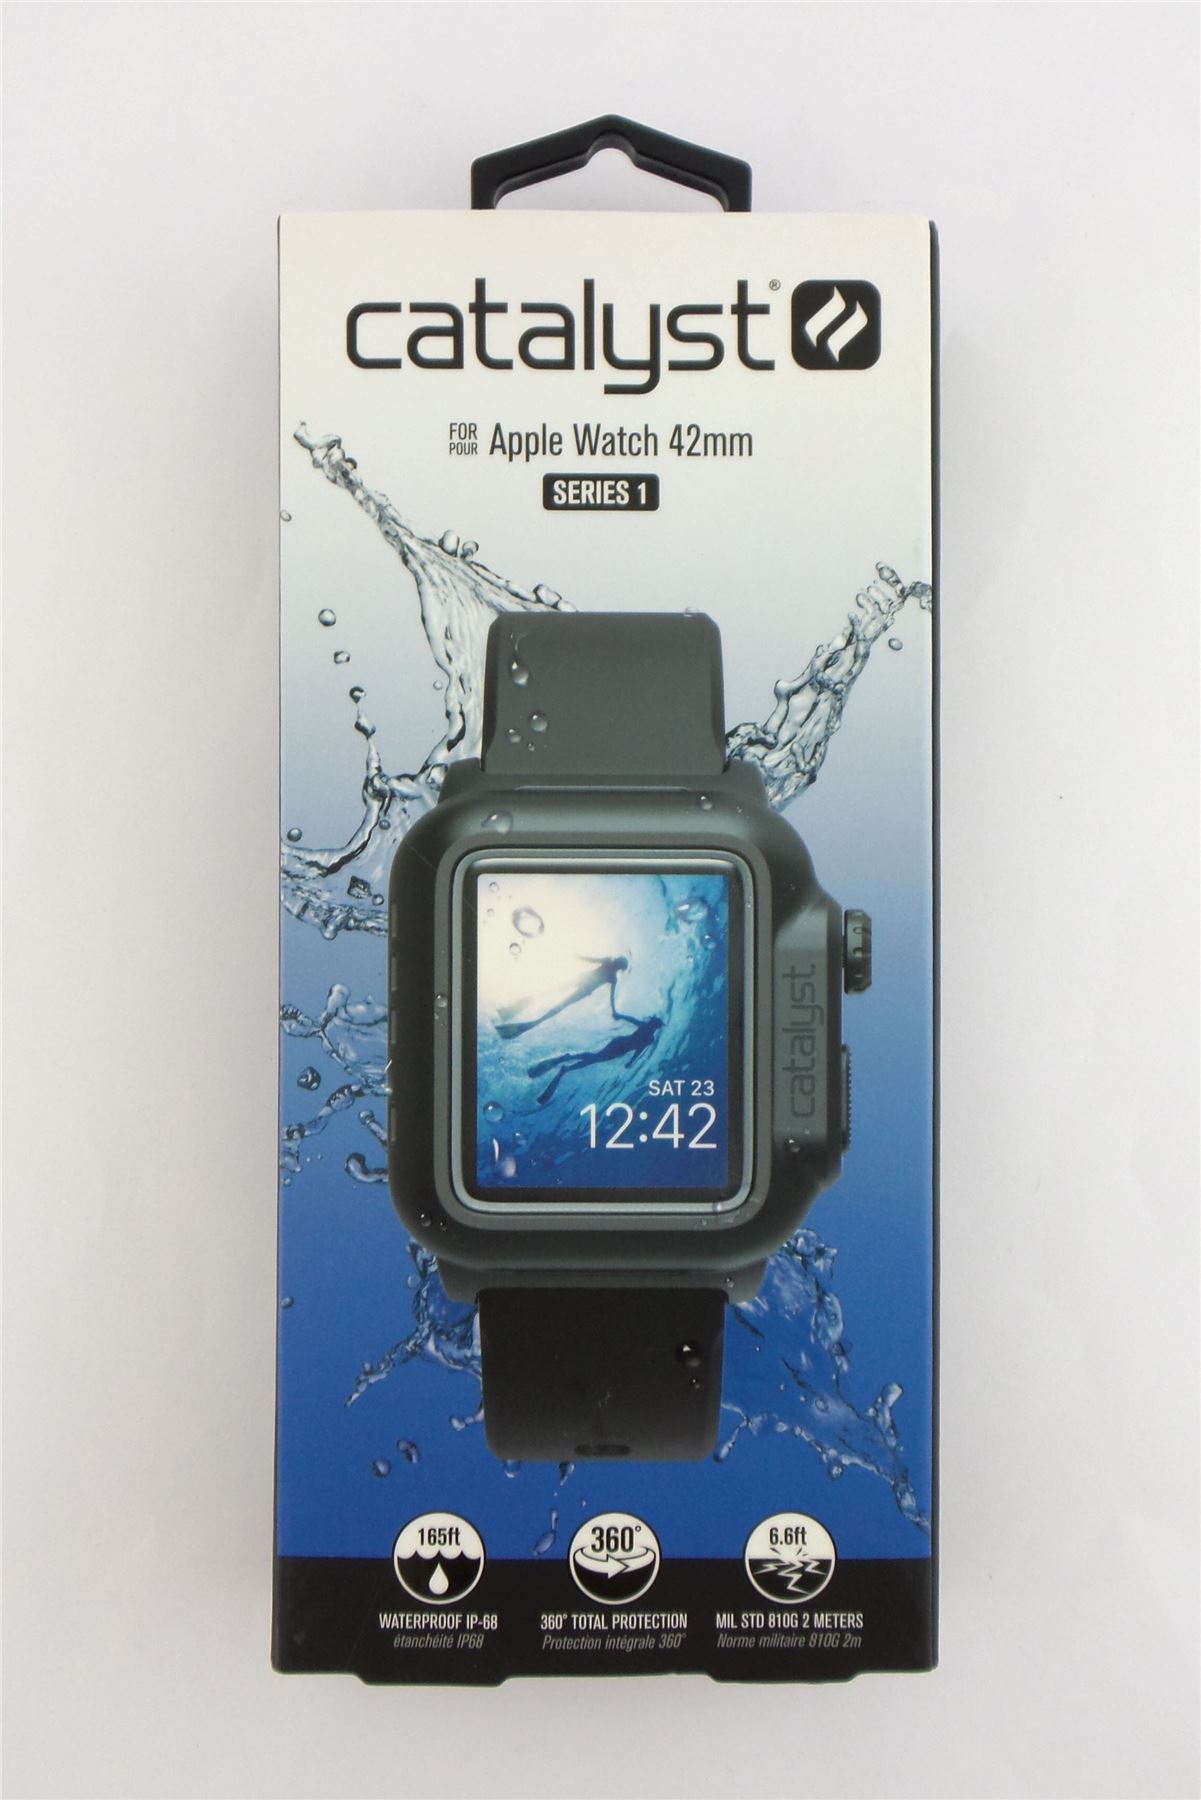 promo code 0fee9 e6f81 Details about Catalyst Waterproof Case for Apple Watch 42mm Series 1  Stealth Black 47131BBR